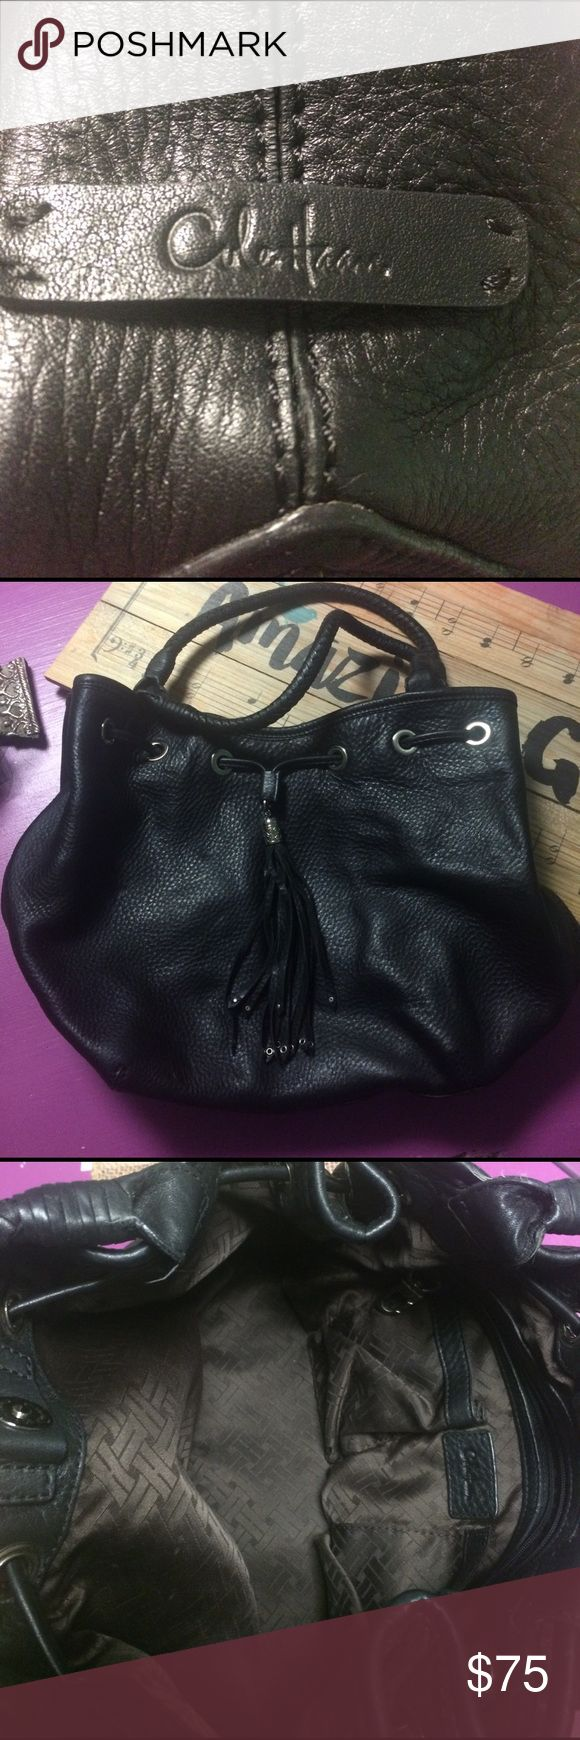 Cole Haan Purse Authentic Cole Haan black leather purse with drawstring/tassels, 2 handles, magnetic closure, and multiple pockets inside. Like new. No scratches, still smells new, no stains on inside. Cole Haan Bags